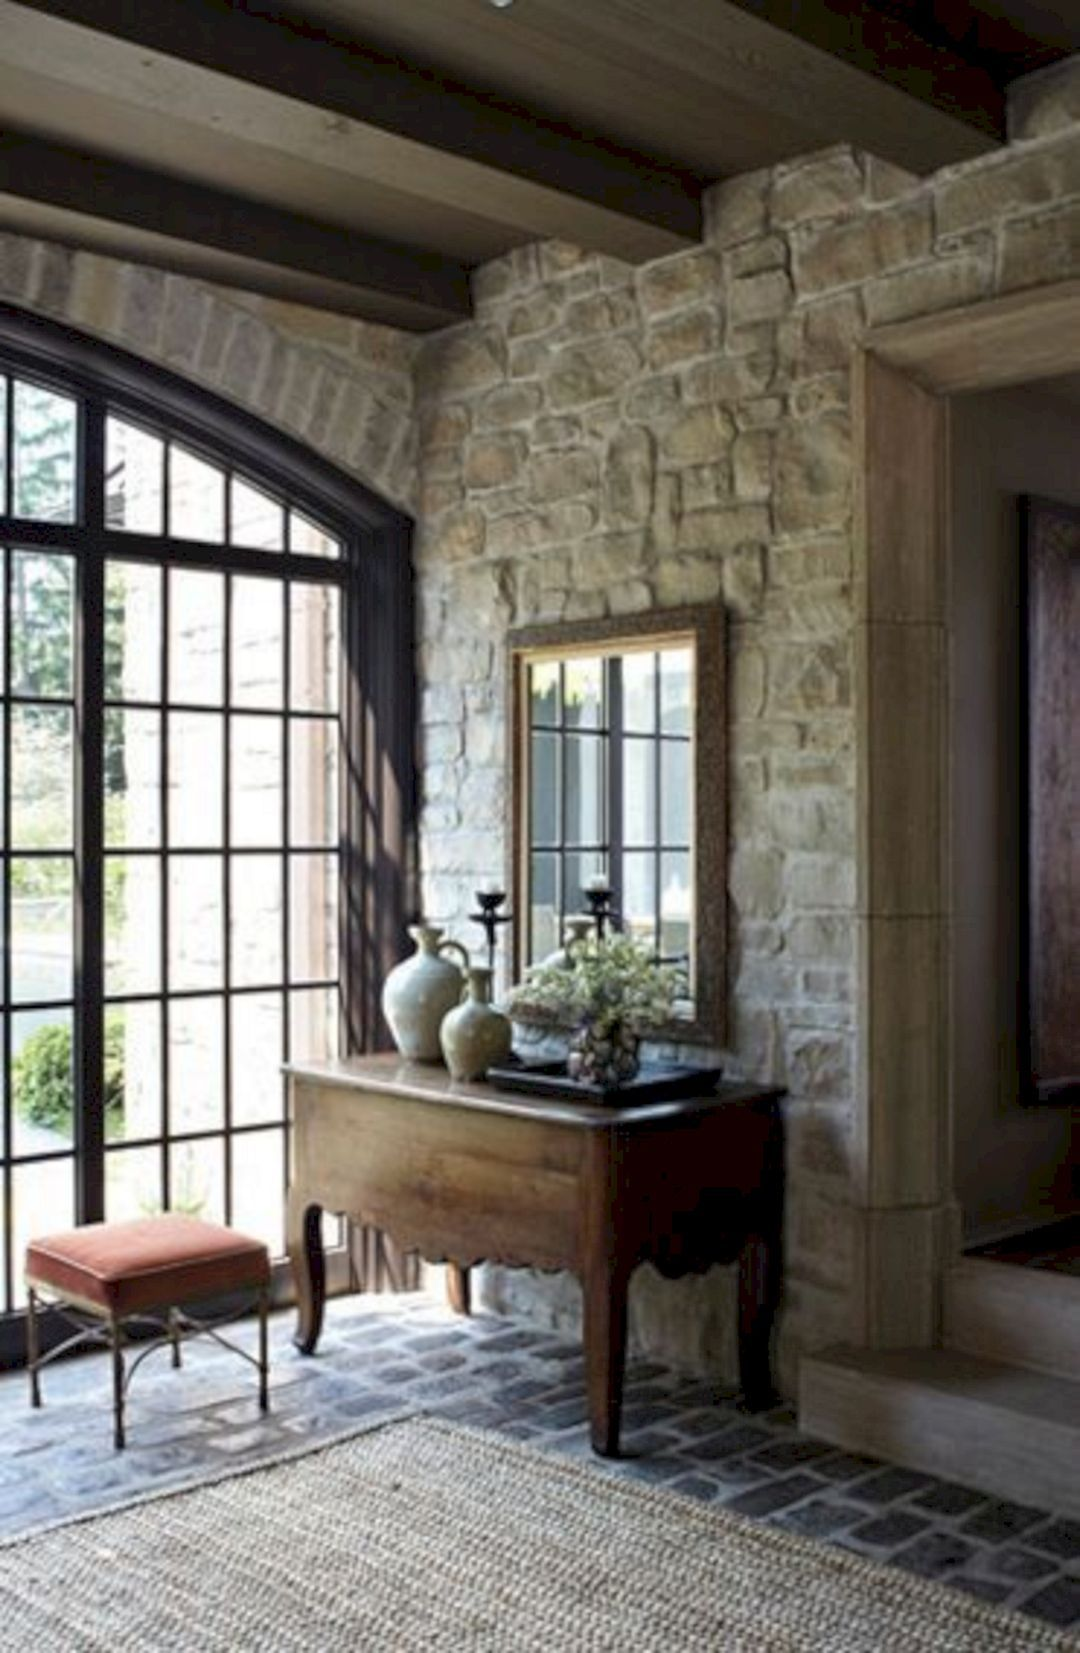 Top 5 Elegant French Country Home Architecture Ideas Freshouz Com French Country Living Room French Country House Country House Decor